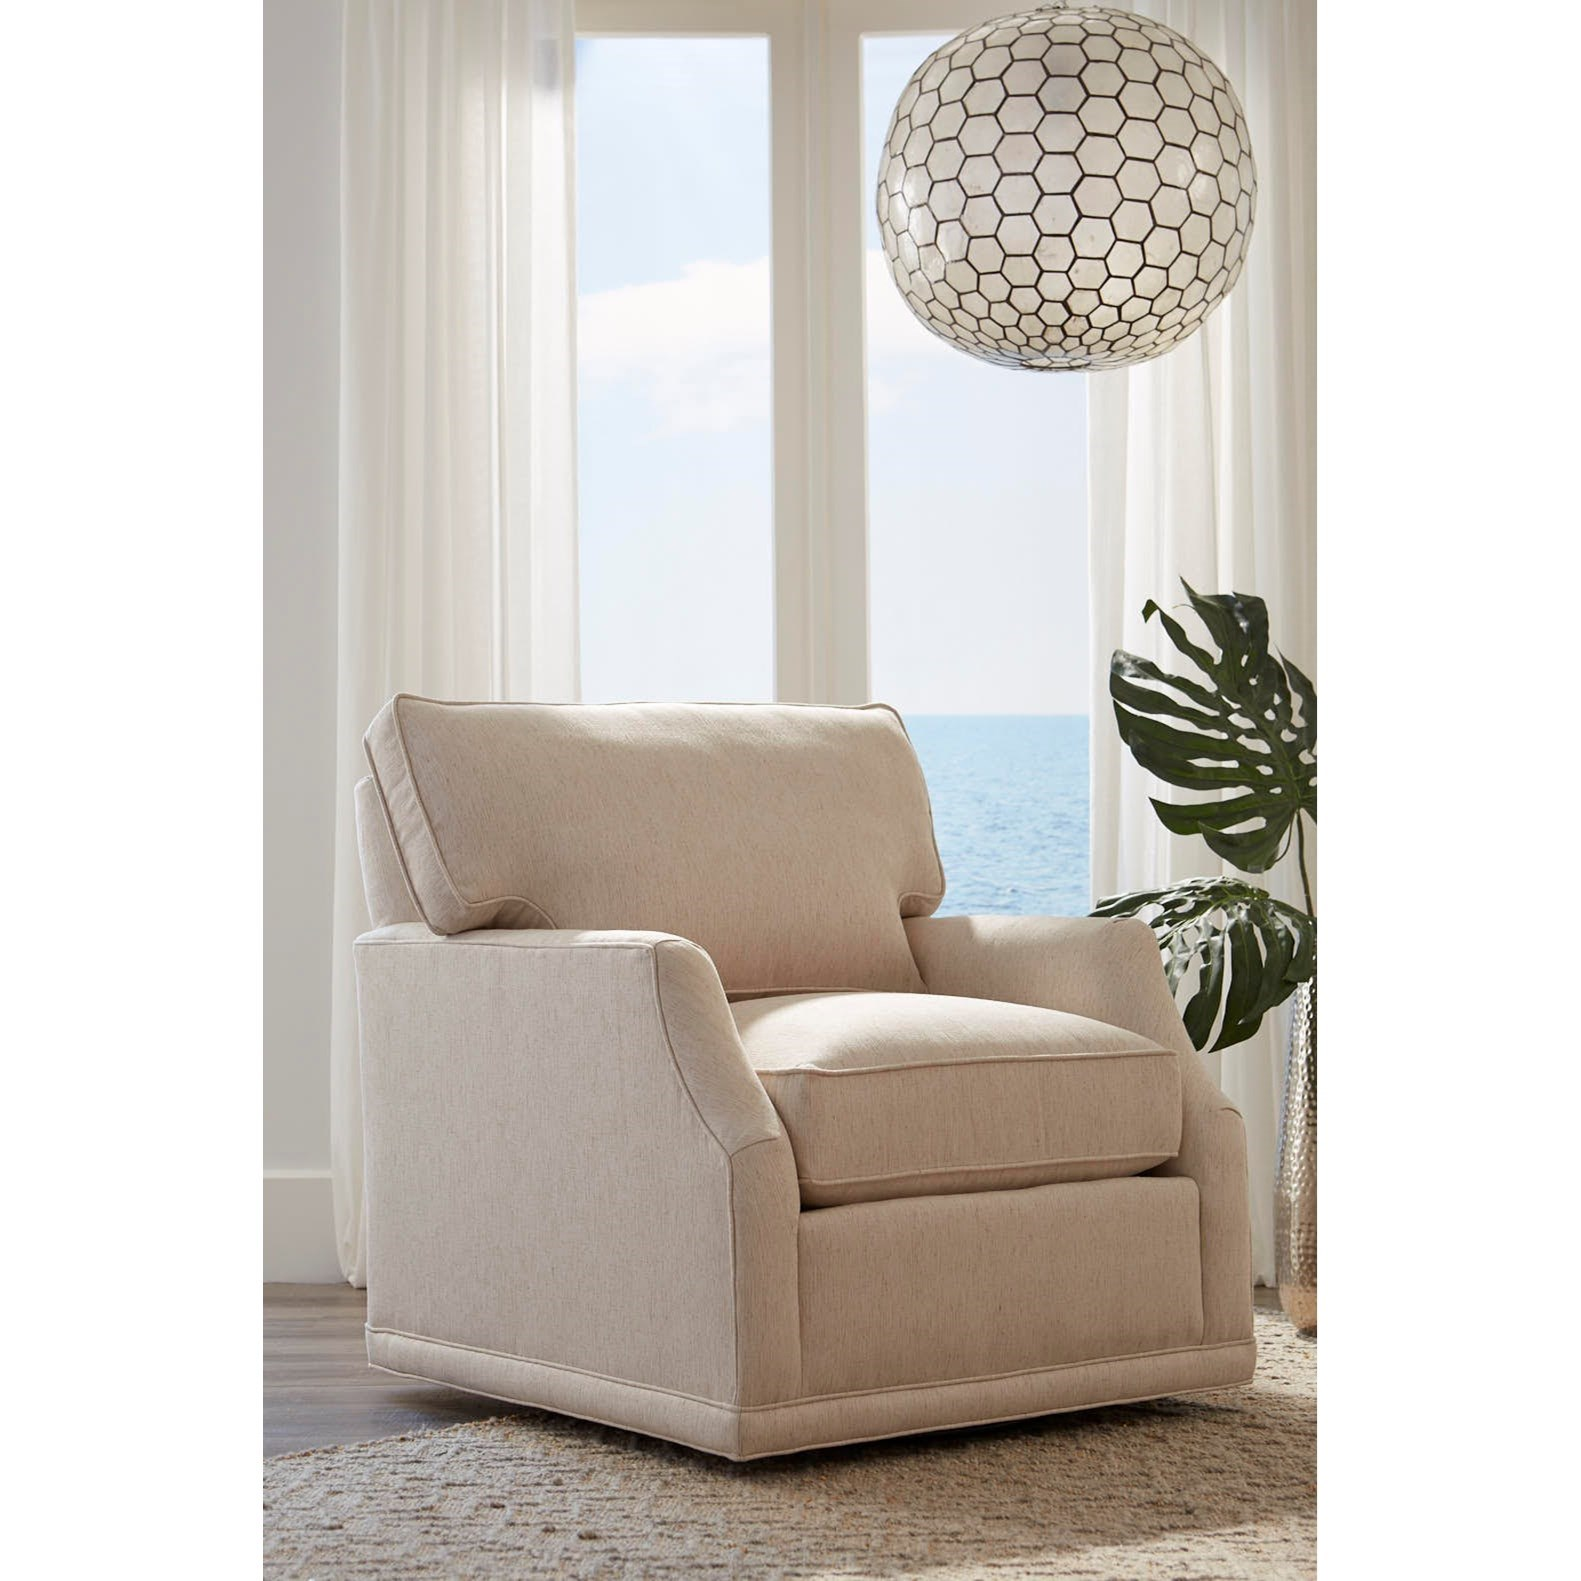 My Style II Customizable Swivel Chair by Rowe at Baer's Furniture